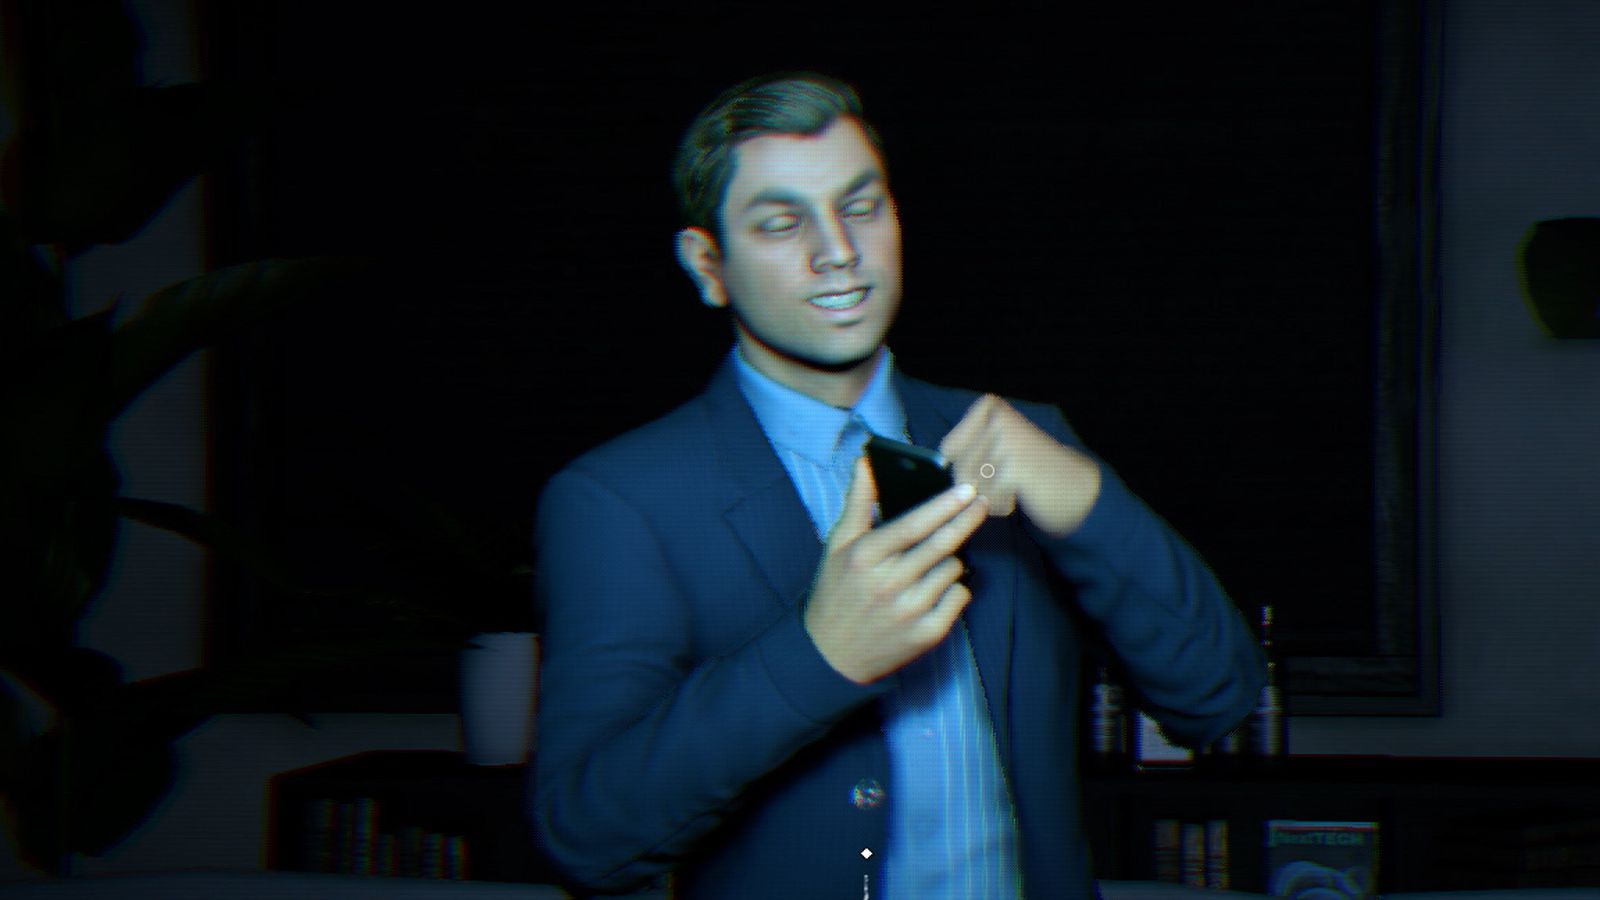 Martin Shkreli In Watch Dogs